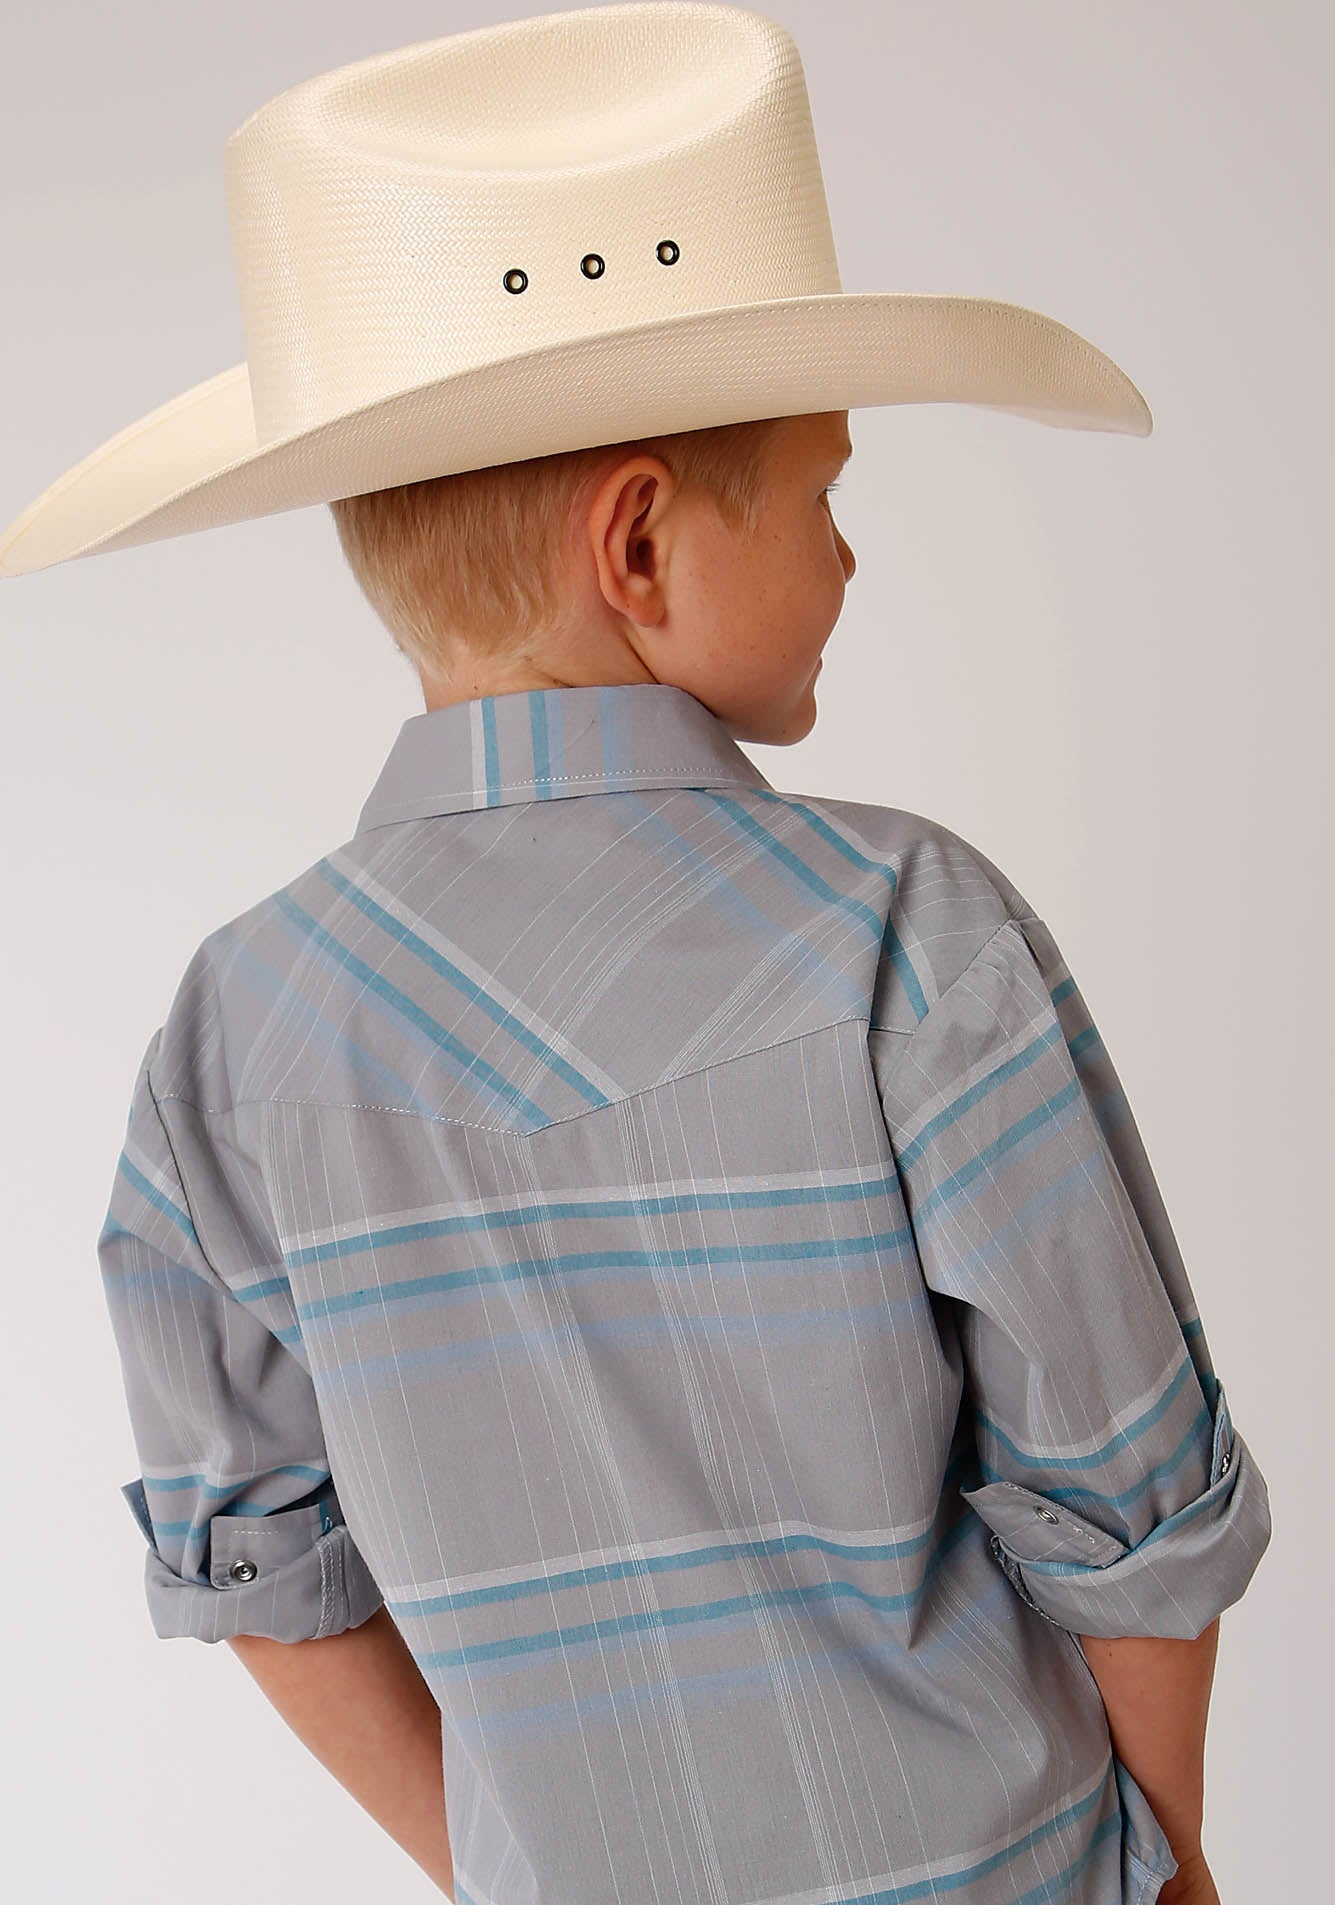 ROPER BOYS GREY 00212 GREY, WHITE, & BLUE PLAID KARMAN CLASSICS- 55/45 PLAIDS LONG SLEEVE